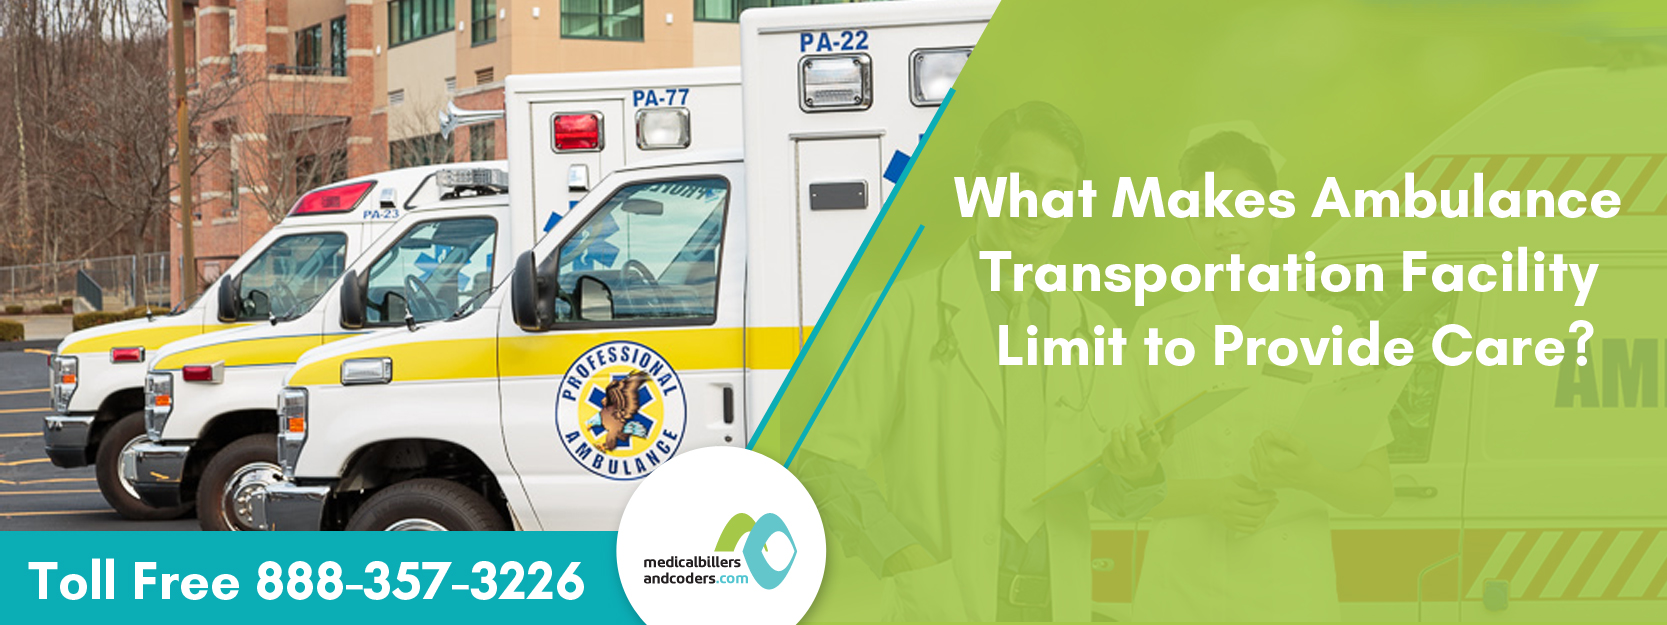 What Makes Ambulance Transportation Facility Limit to Provide Care?